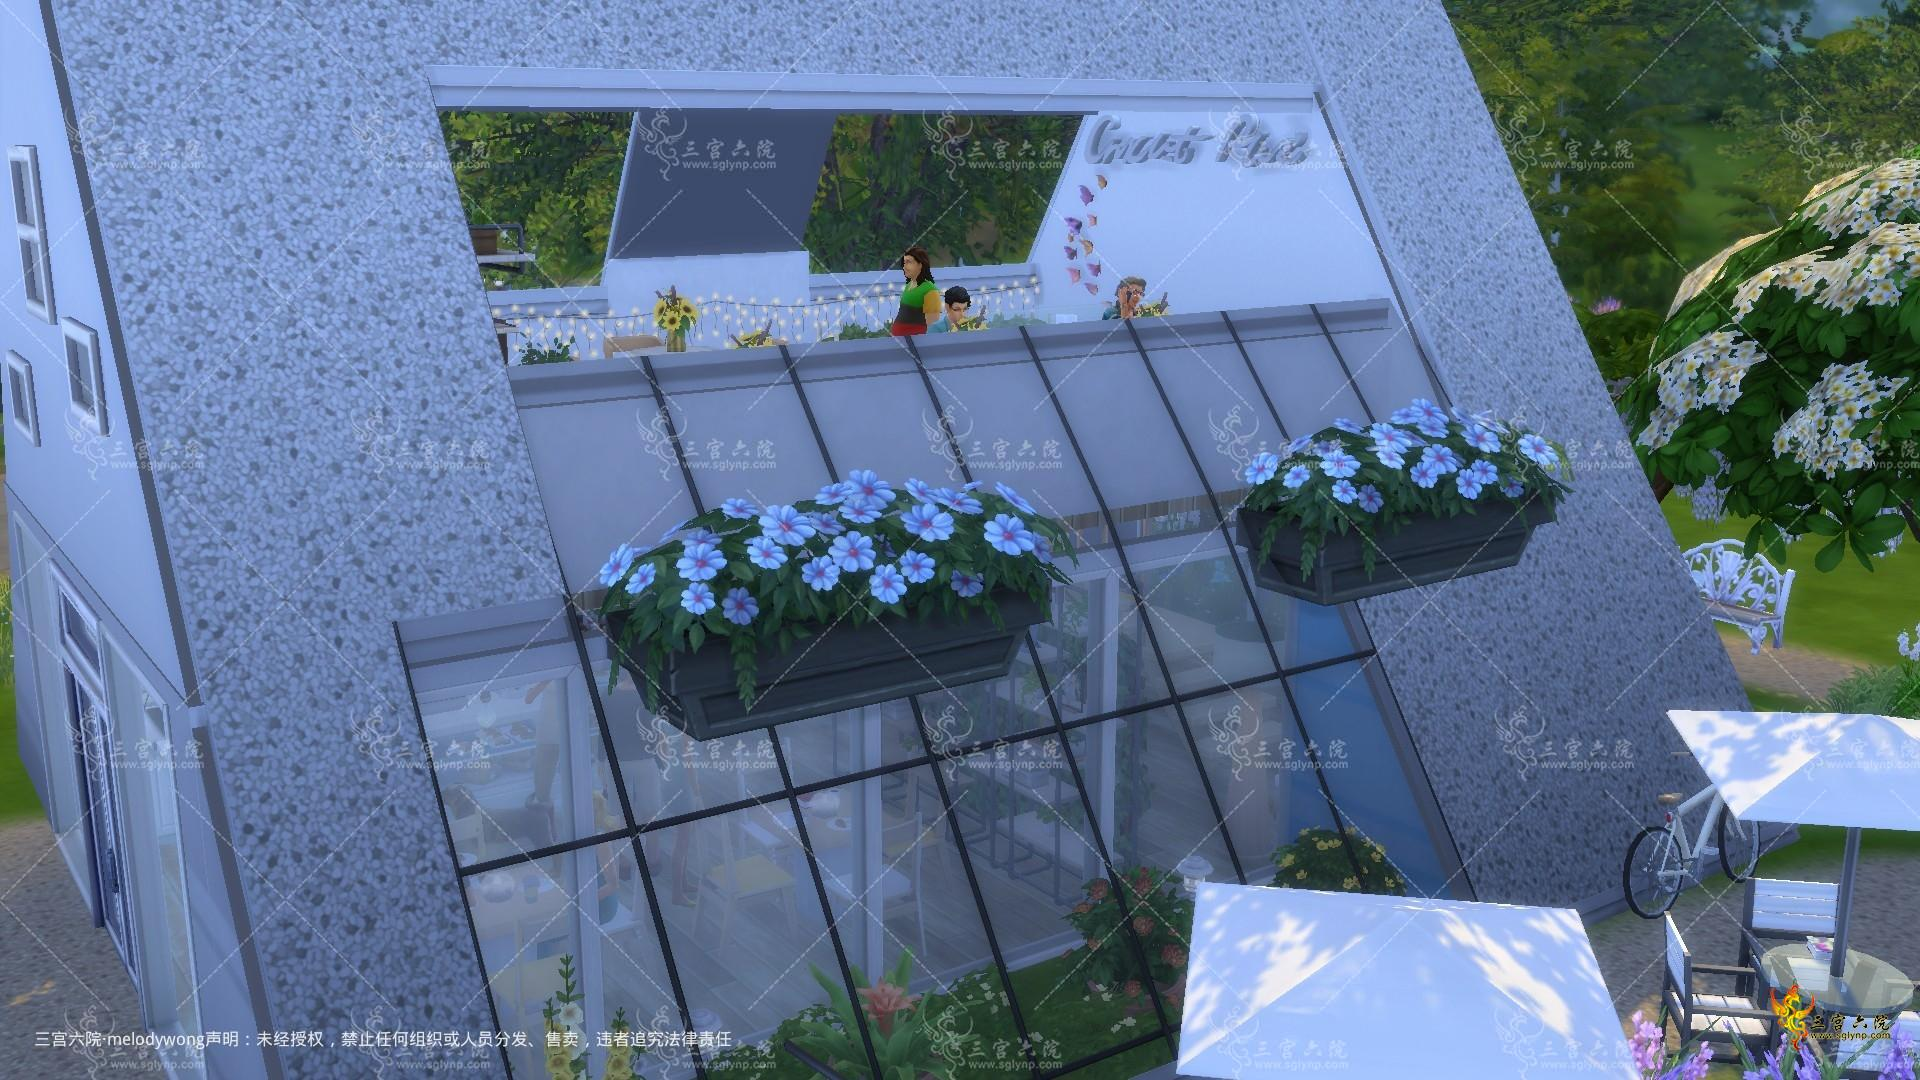 The Sims 4 2021_8_26 下午 10_01_52.png